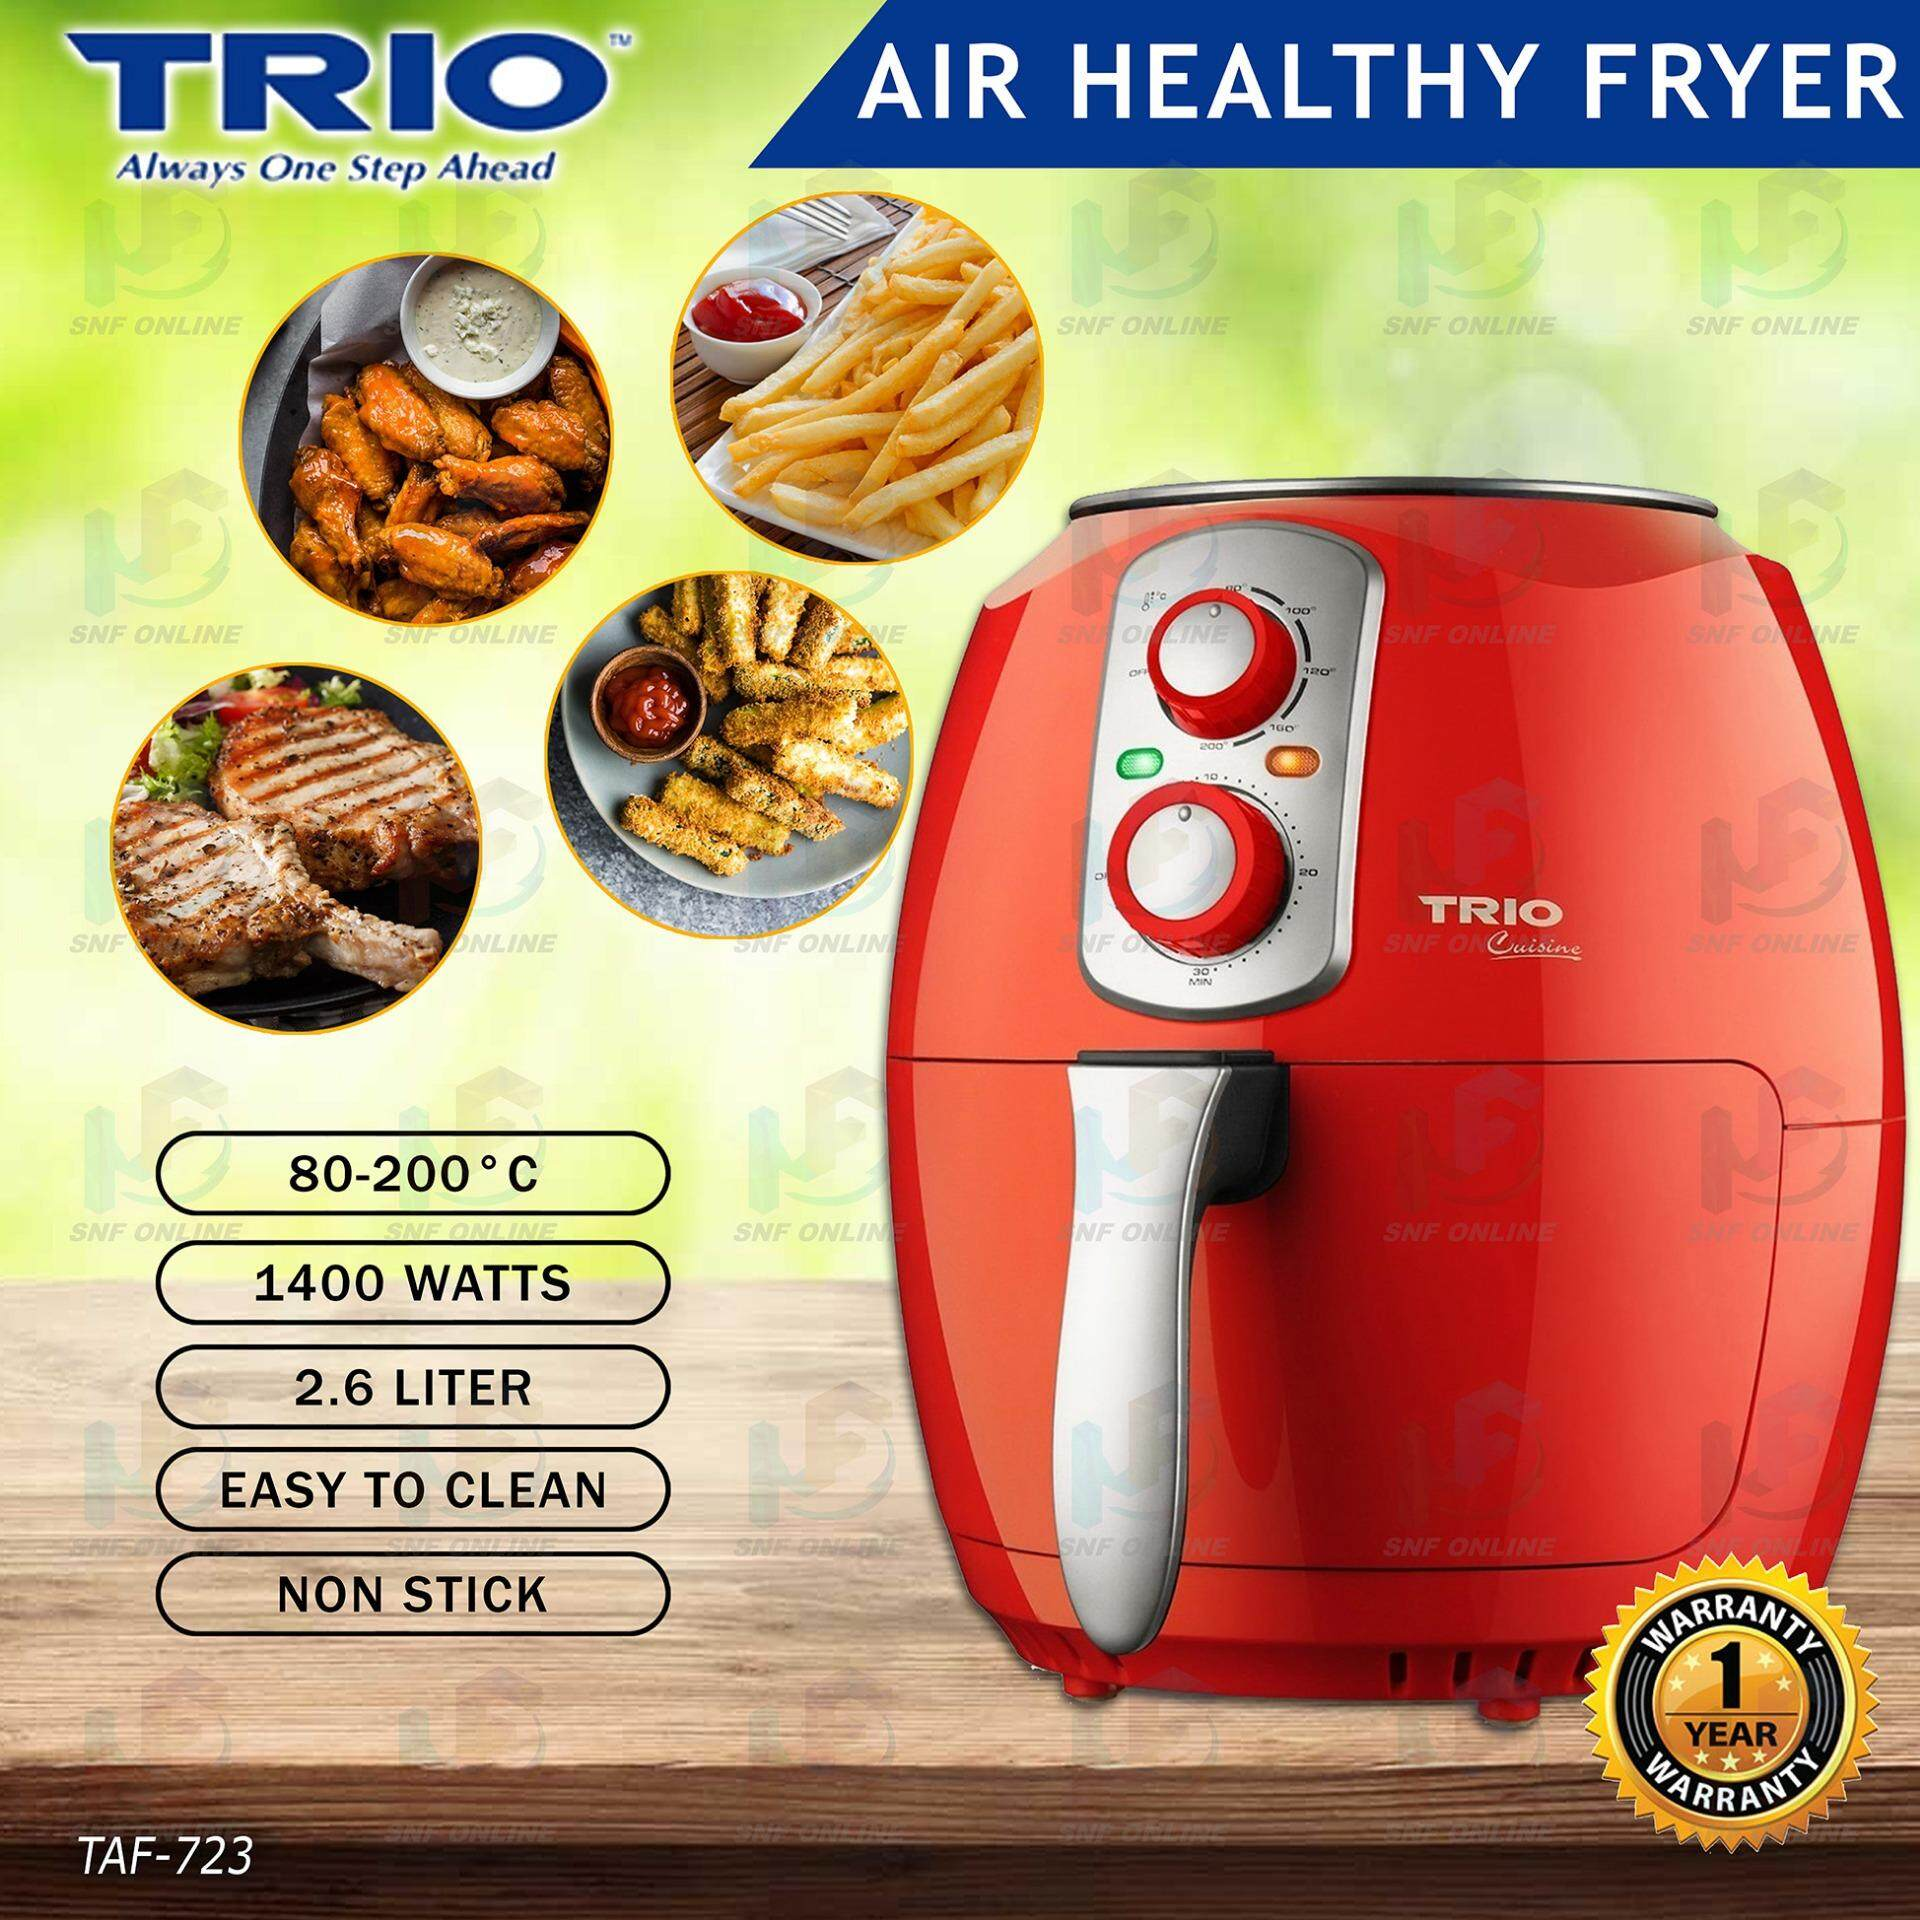 Trio Air Fryer 2.6L TAF-723 (New Exclusive May 2019)